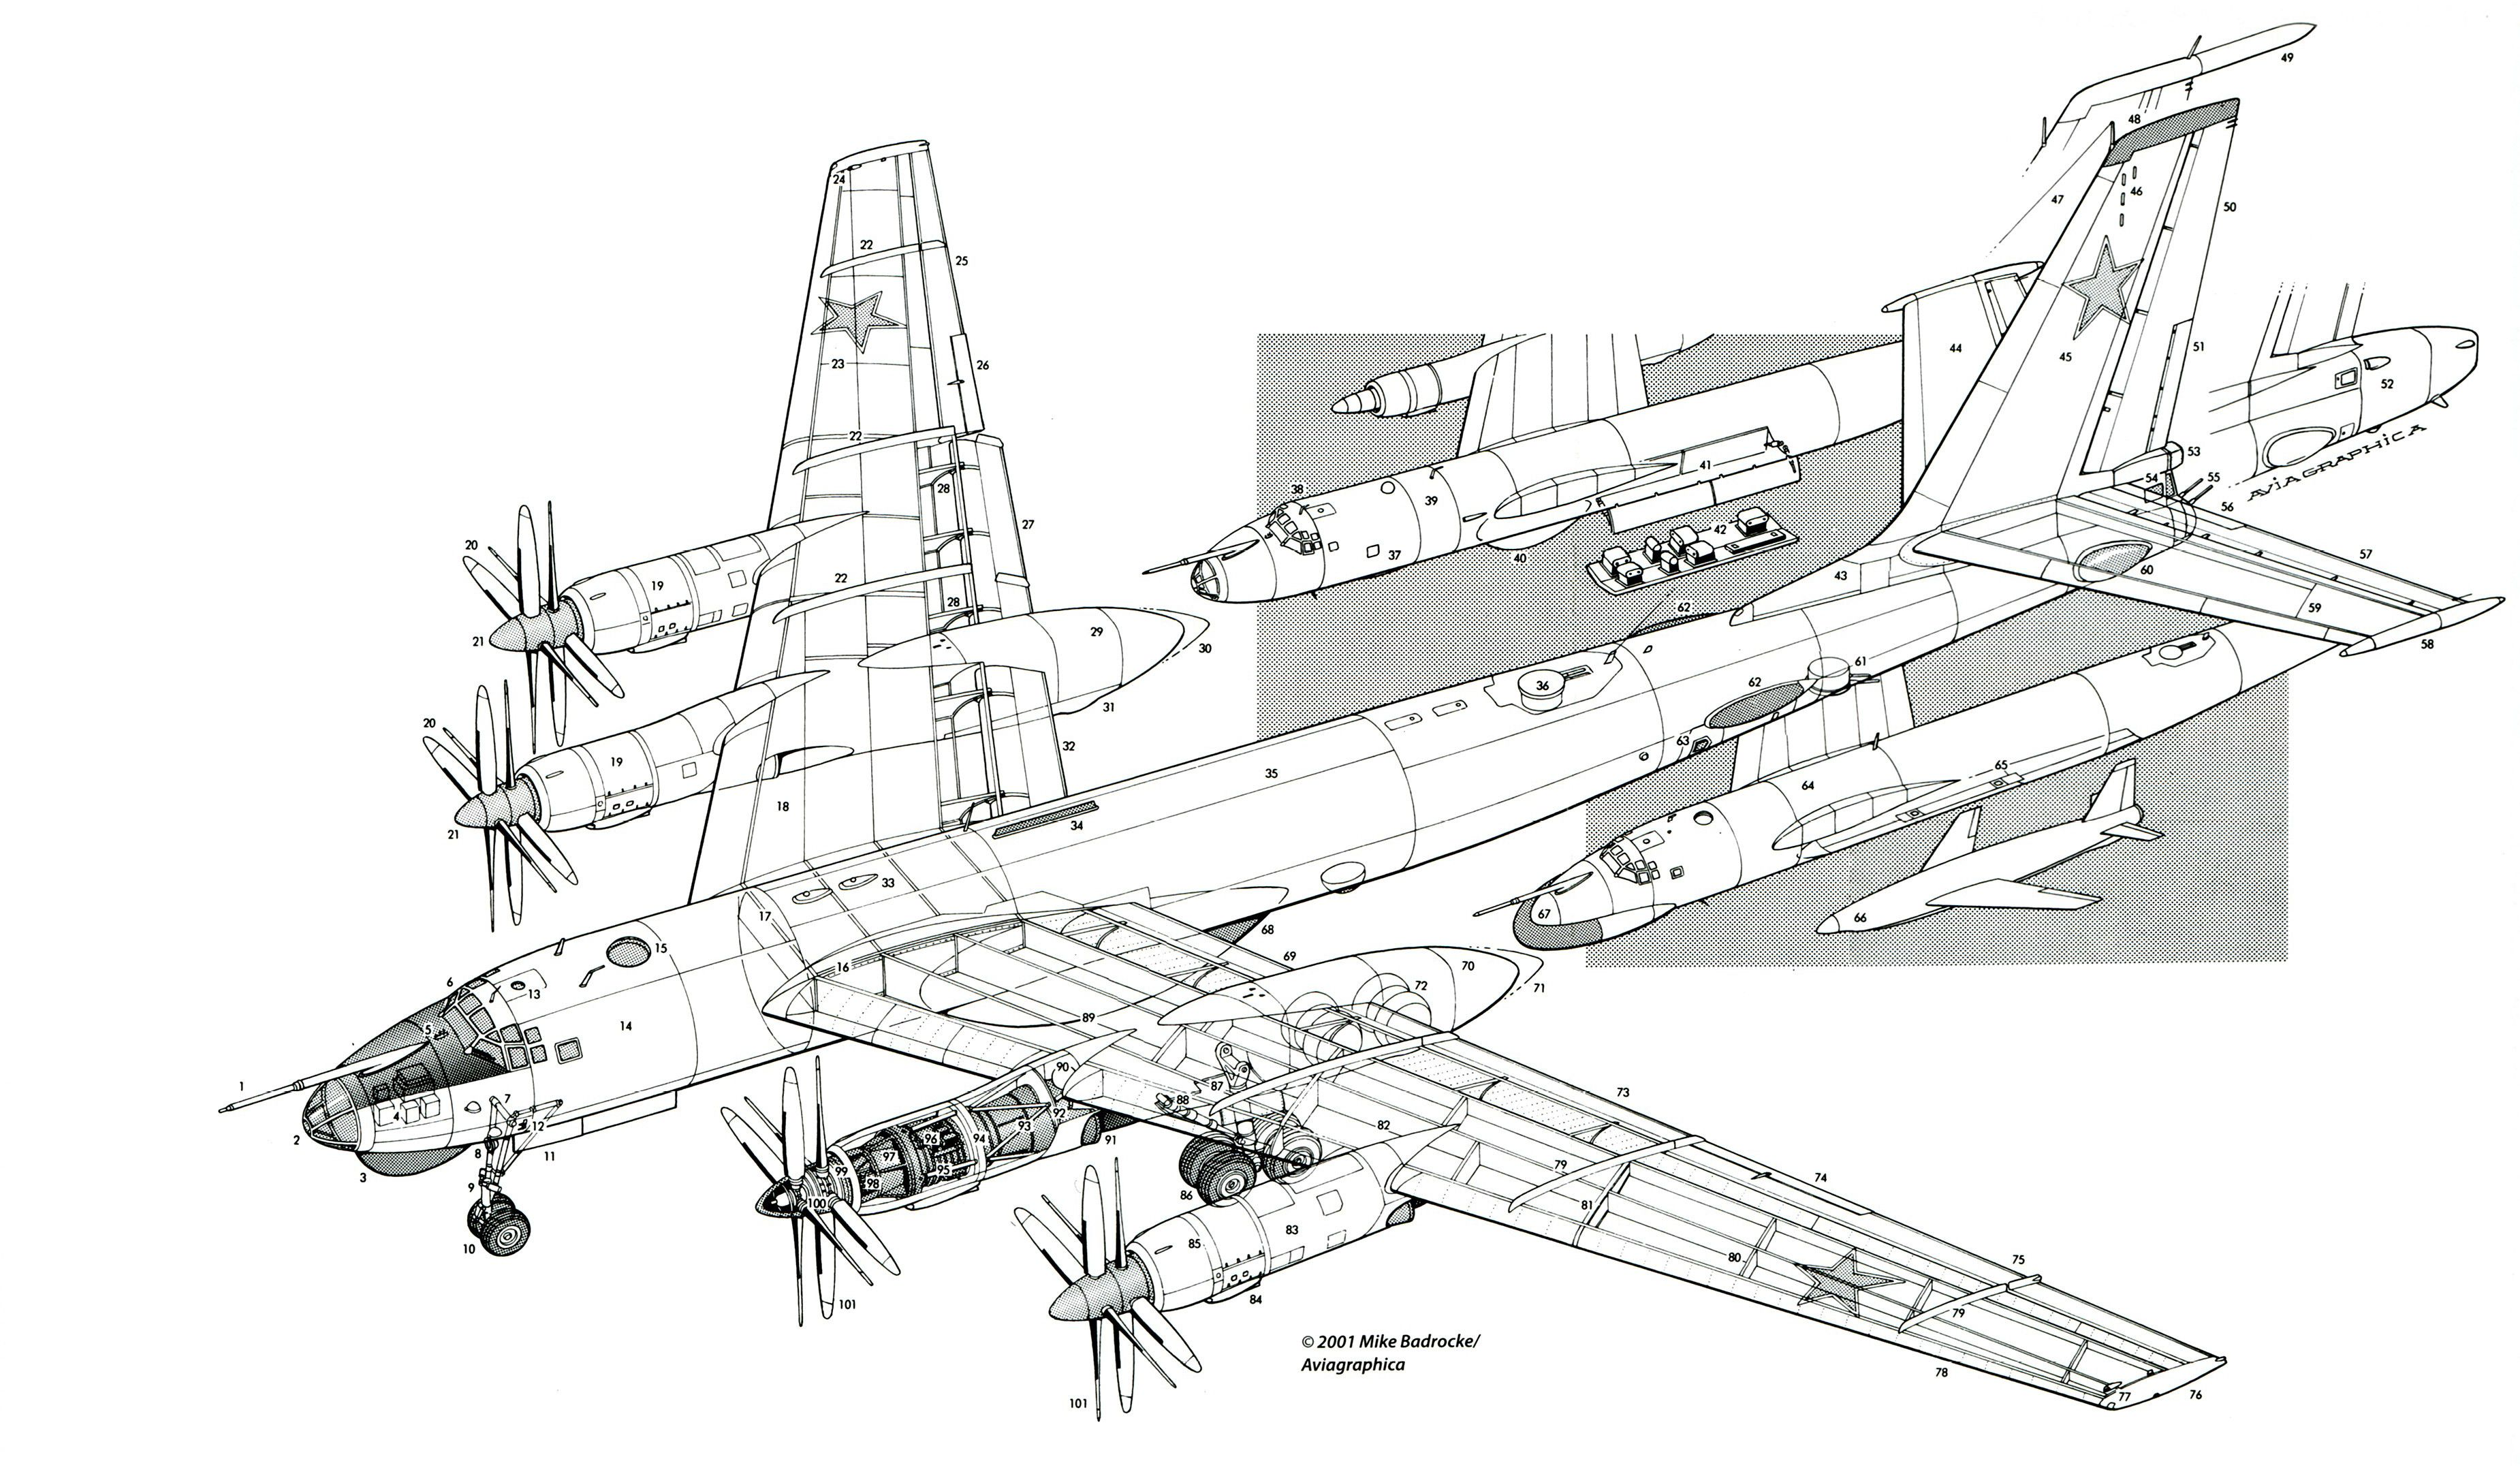 Pin By Malcolm Edwards On Cutaways